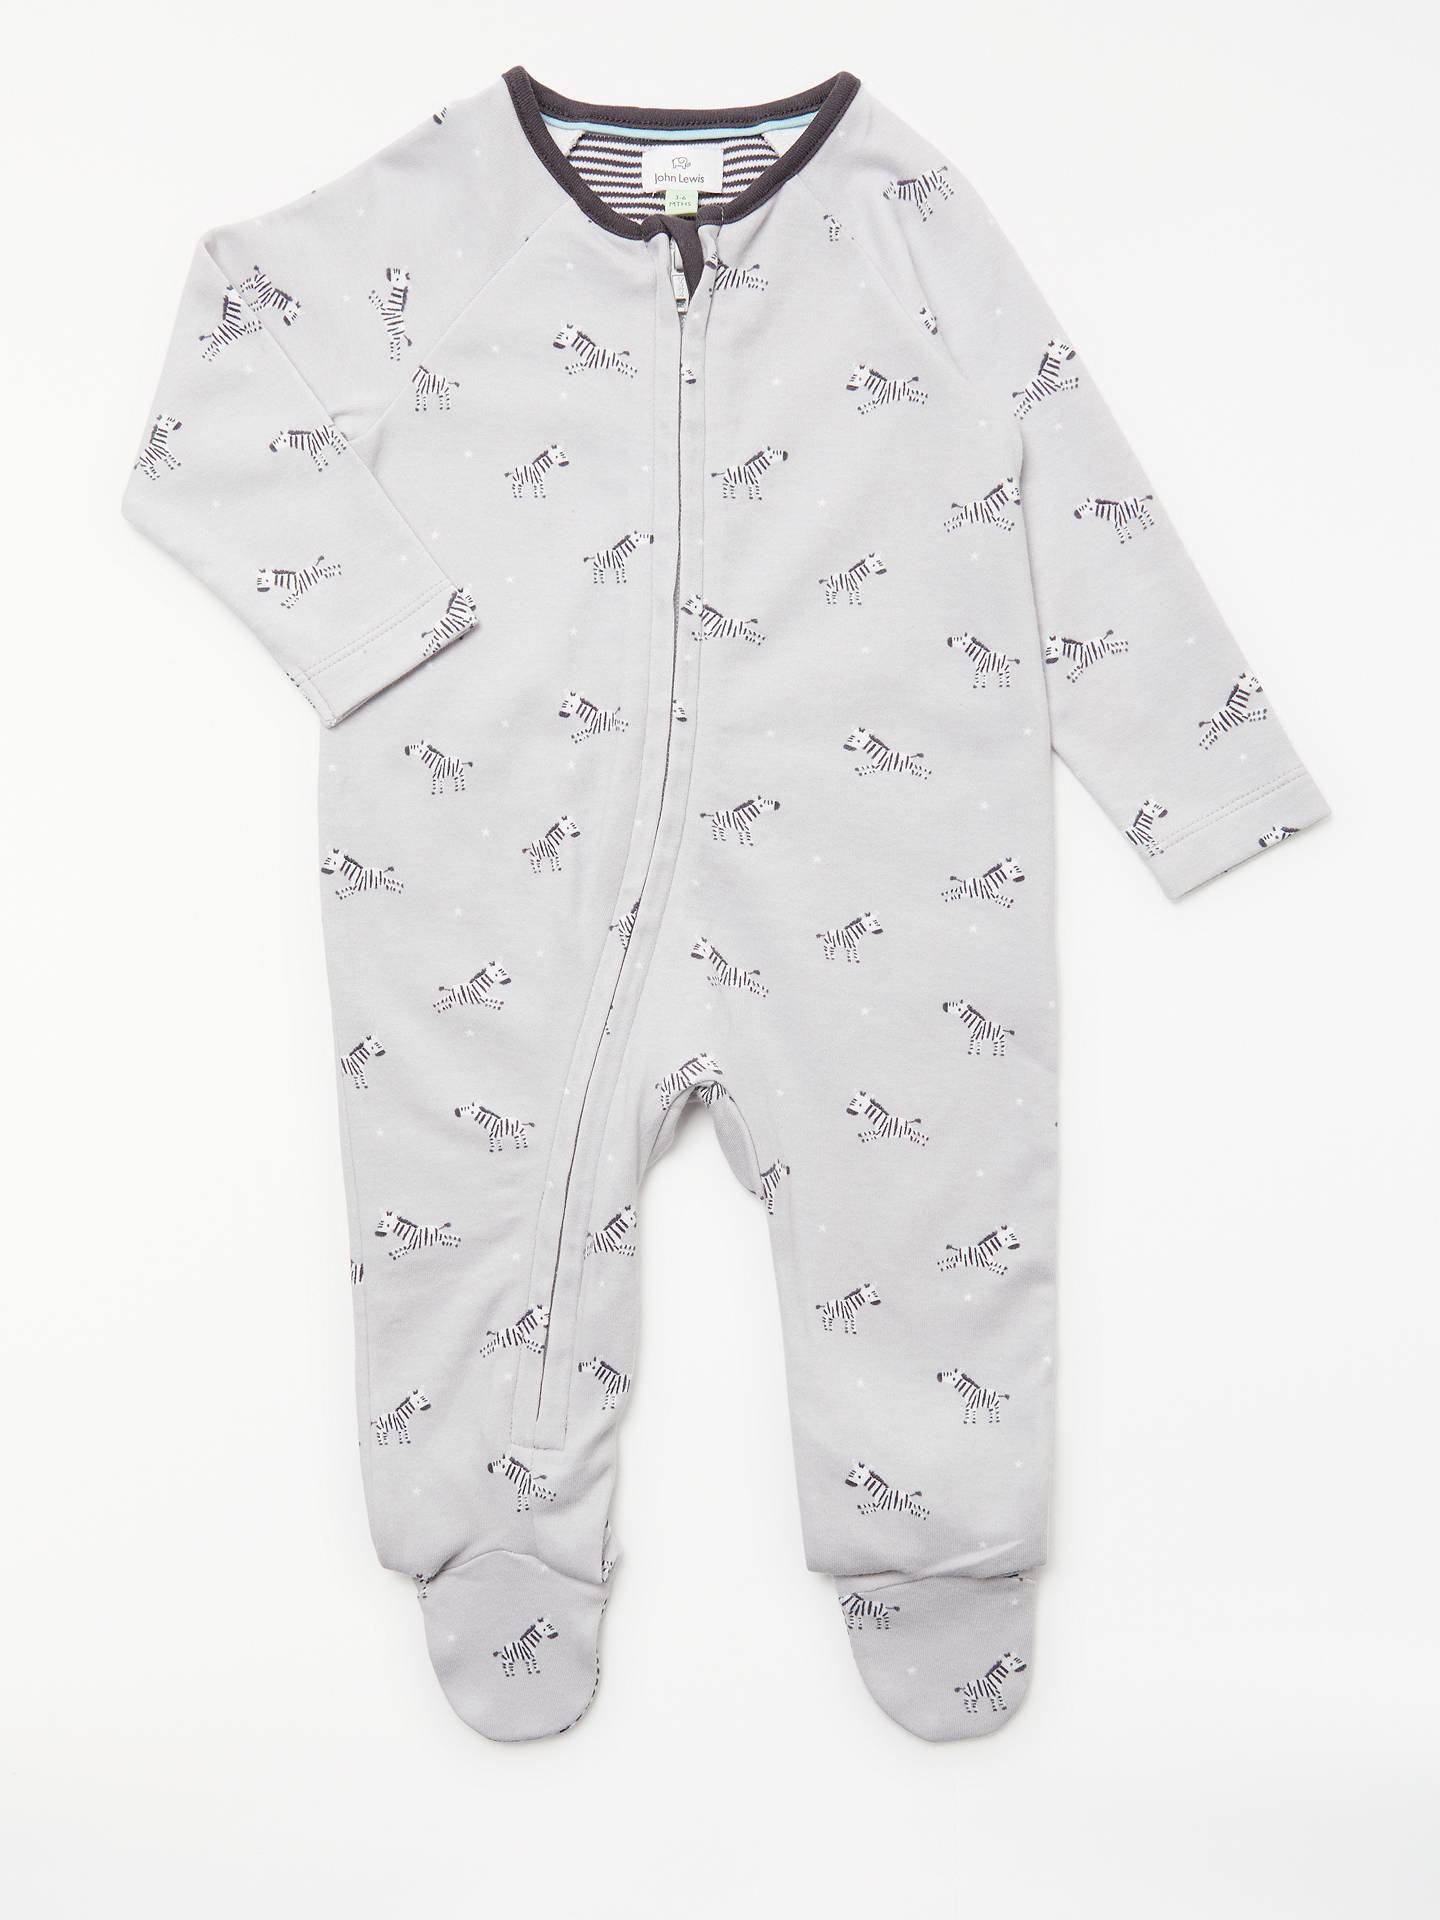 233e6e216a1f John Lewis   Partners Baby GOTS Organic Cotton Zebra Zip Up ...